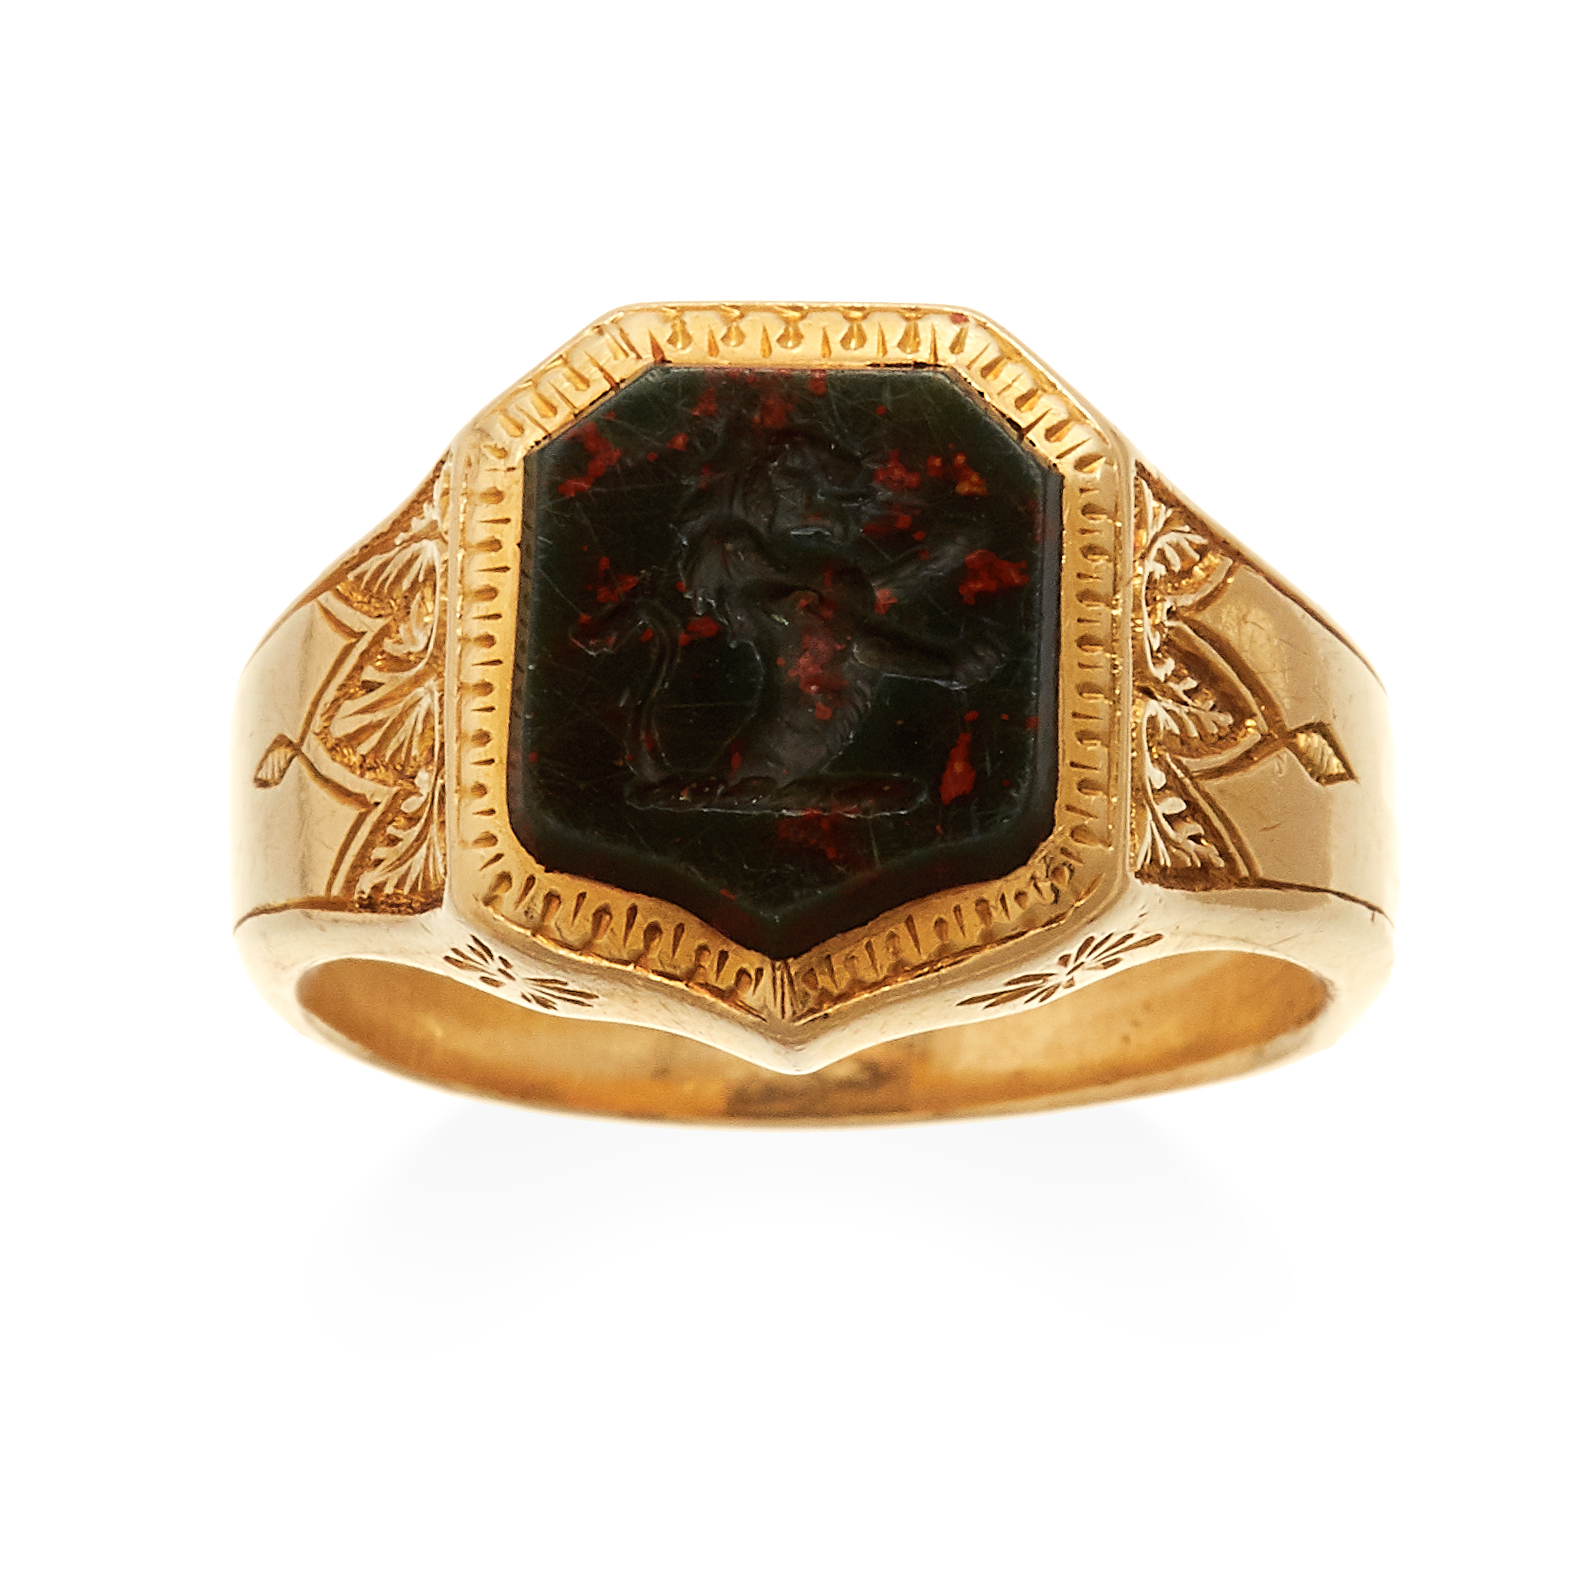 AN ANTIQUE CARVED INTAGLIO HARDSTONE SIGNET RING, 19TH CENTURY in 18ct yellow gold set with an